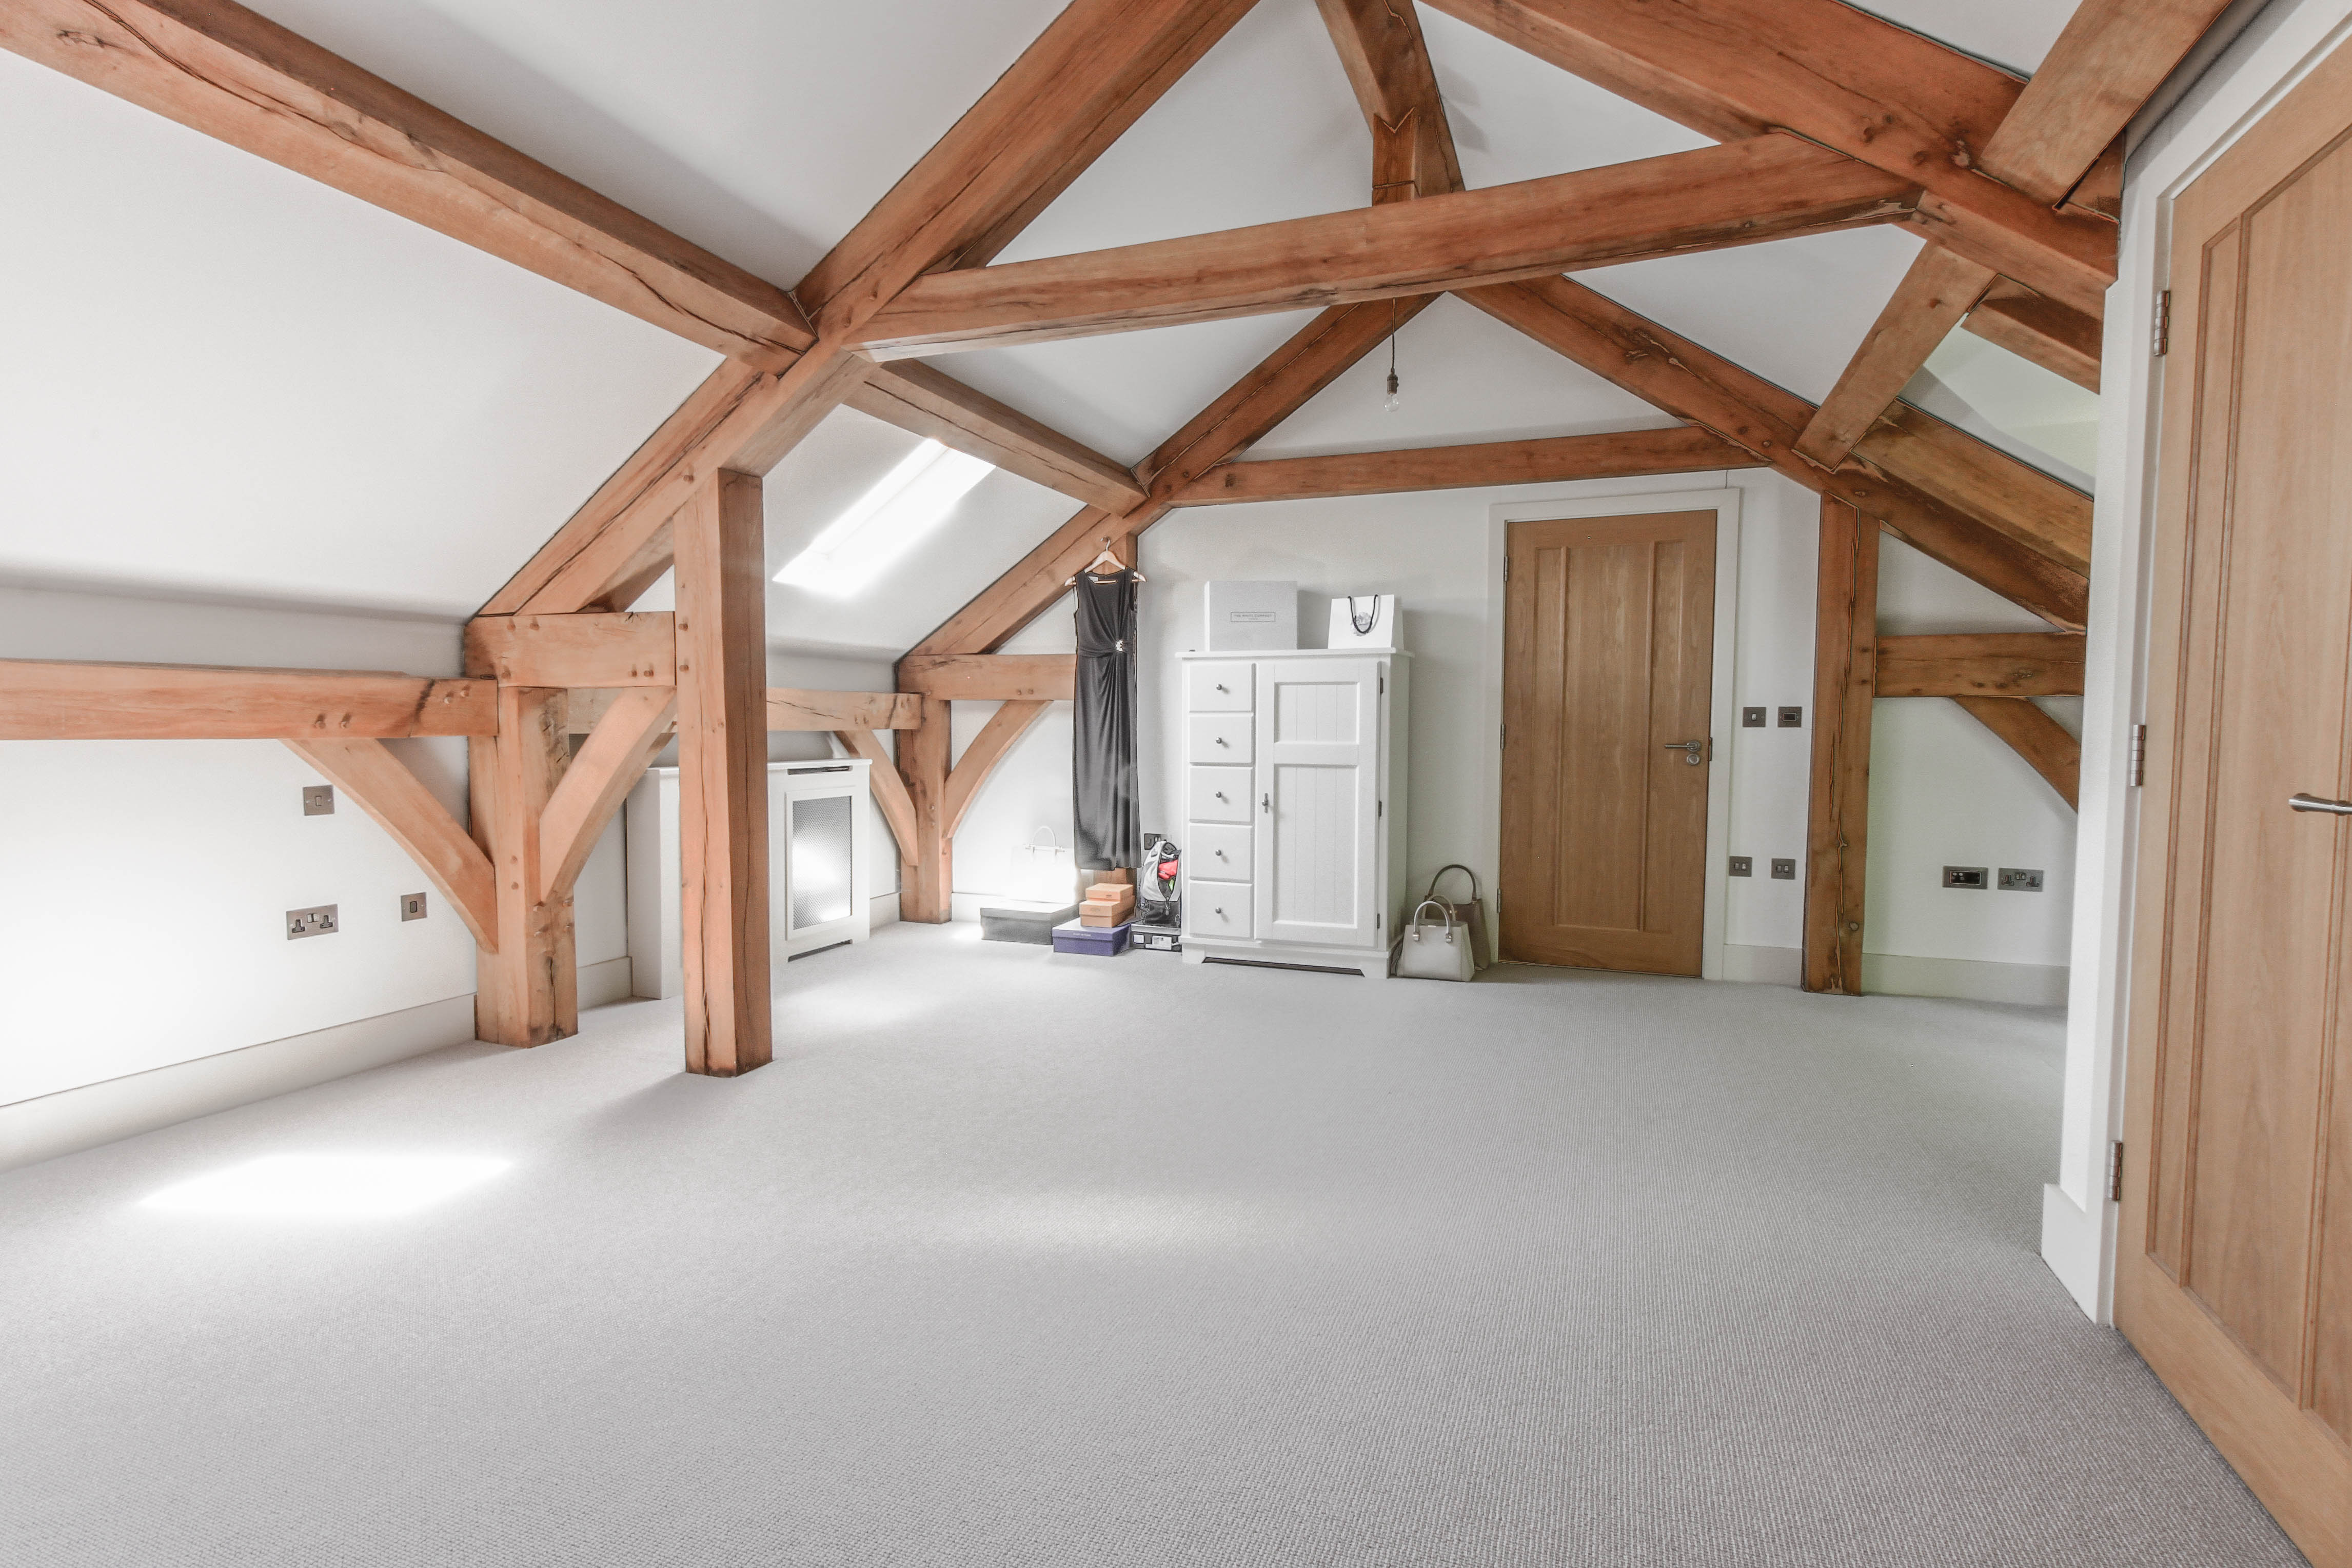 oakwrights,Extra Space